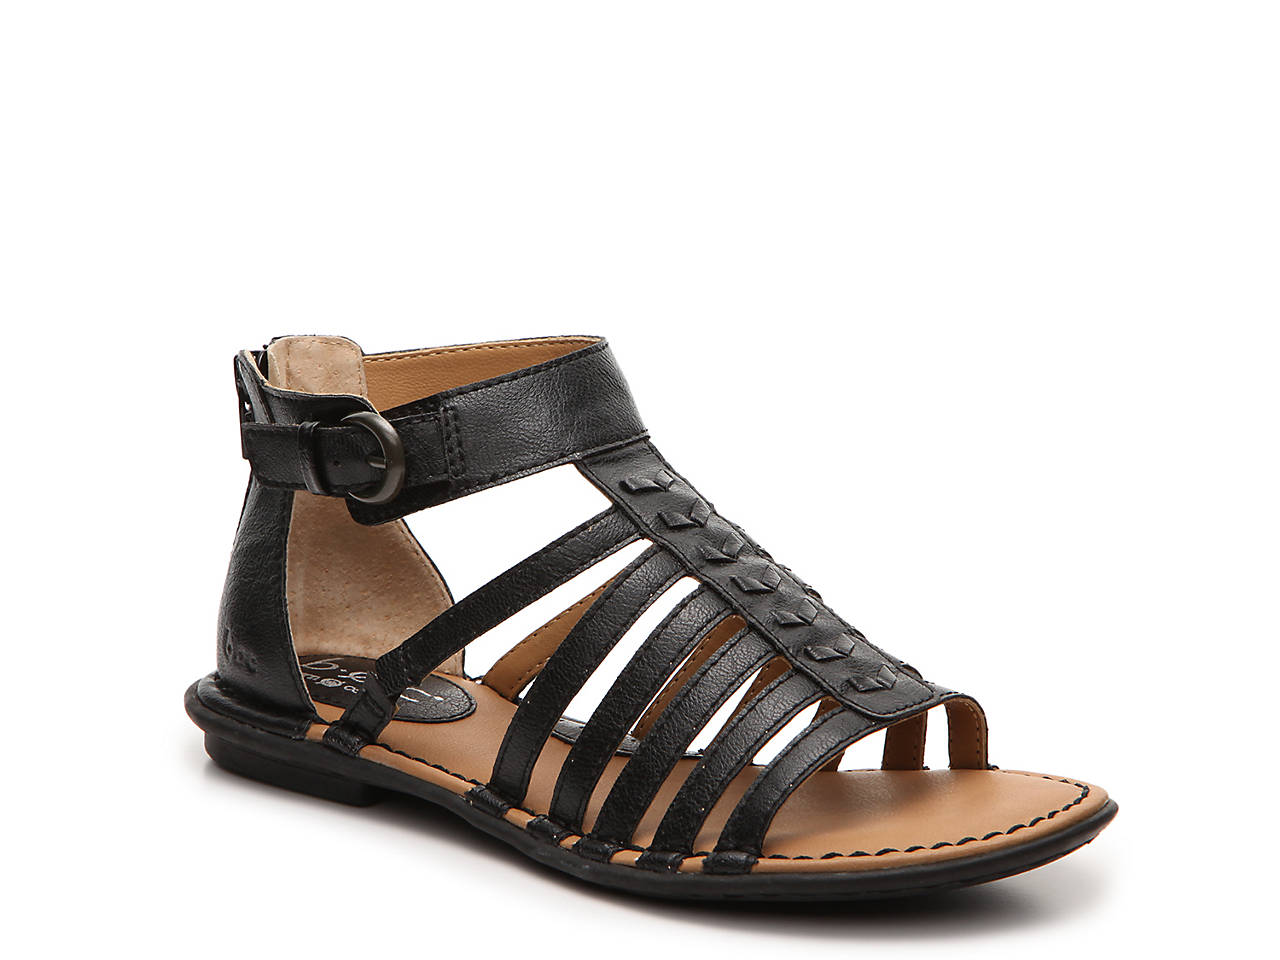 9e44142ea598 b.o.c Carrick Gladiator Sandal Women s Shoes